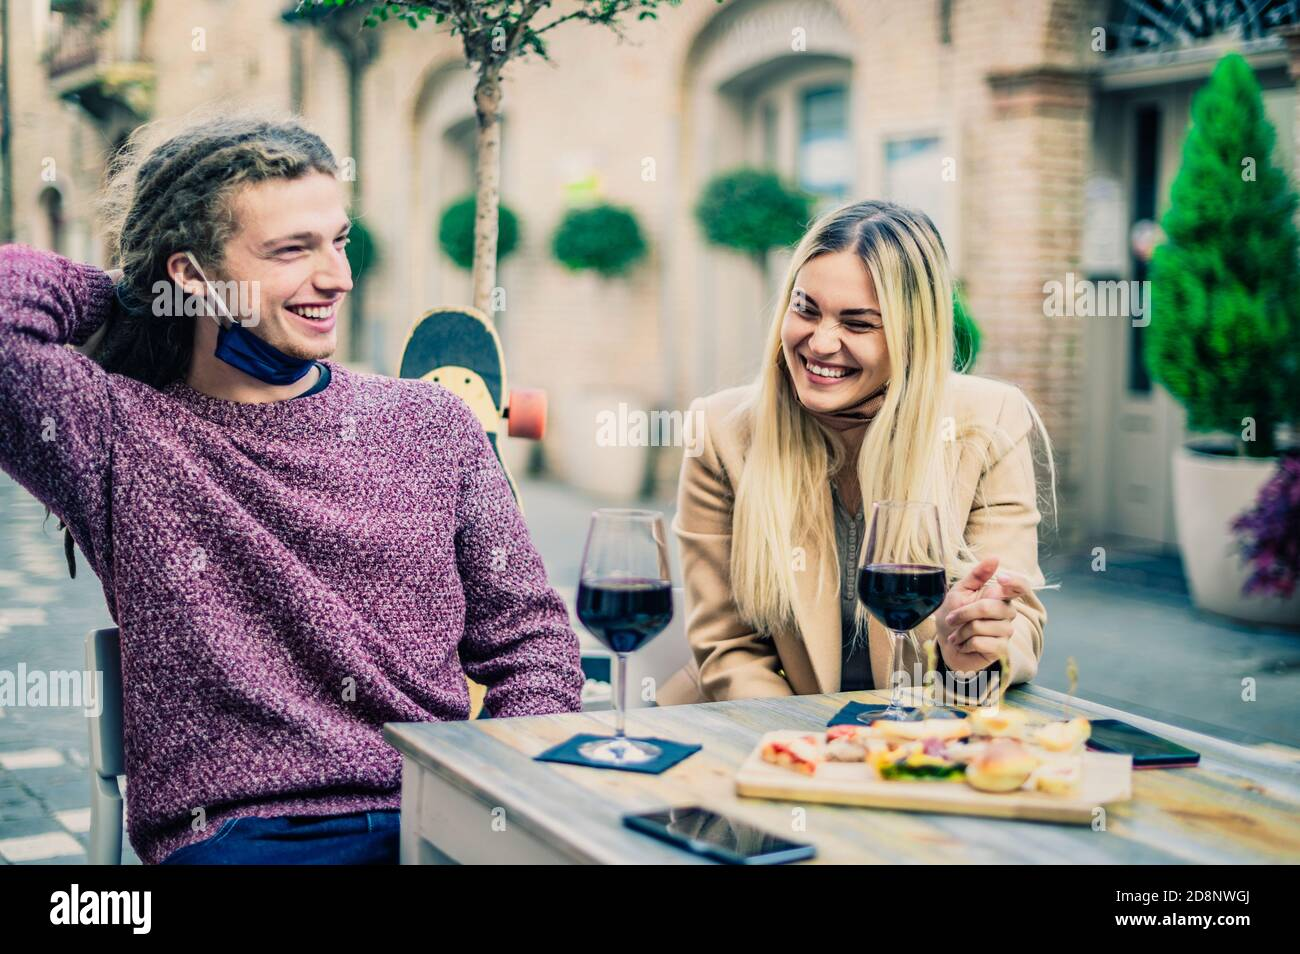 Couple drinking red wine at bar with open face masks in coronavirus time - New normal concept - Focus on women Stock Photo